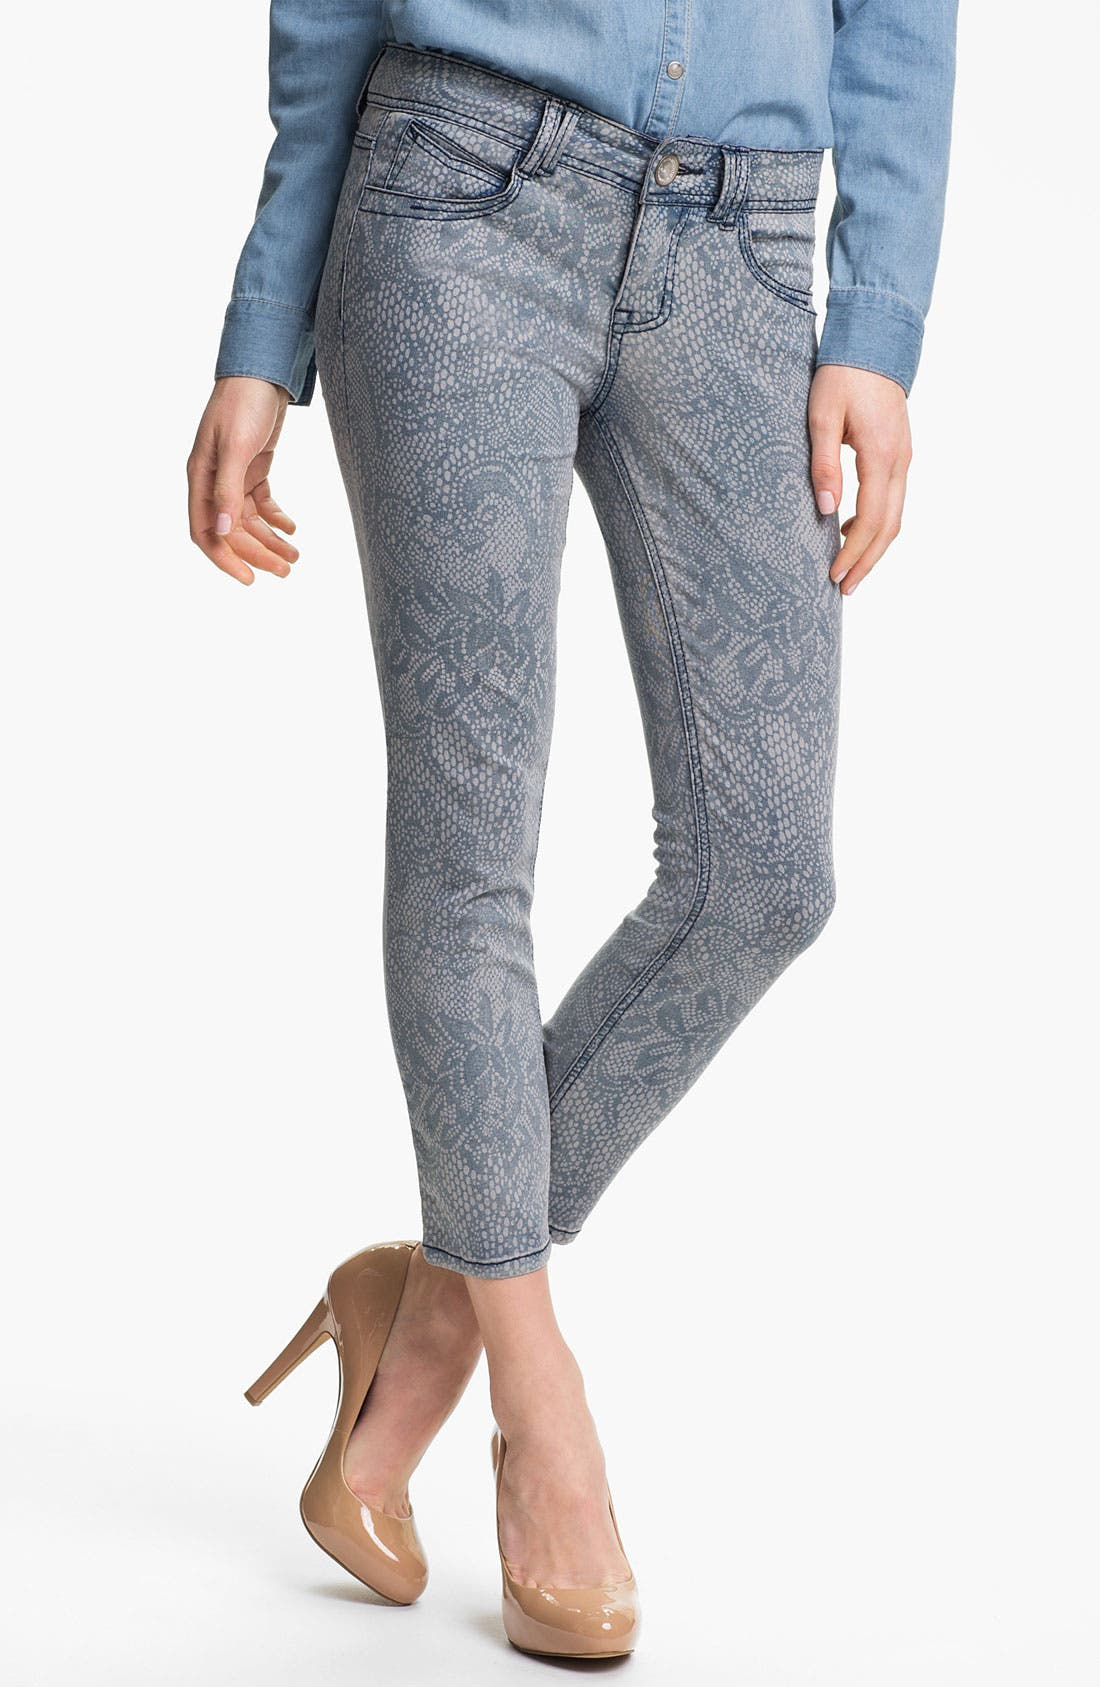 Main Image - Wit & Wisdom Lace Print Crop Jeans (Indigo) (Nordstrom Exclusive)